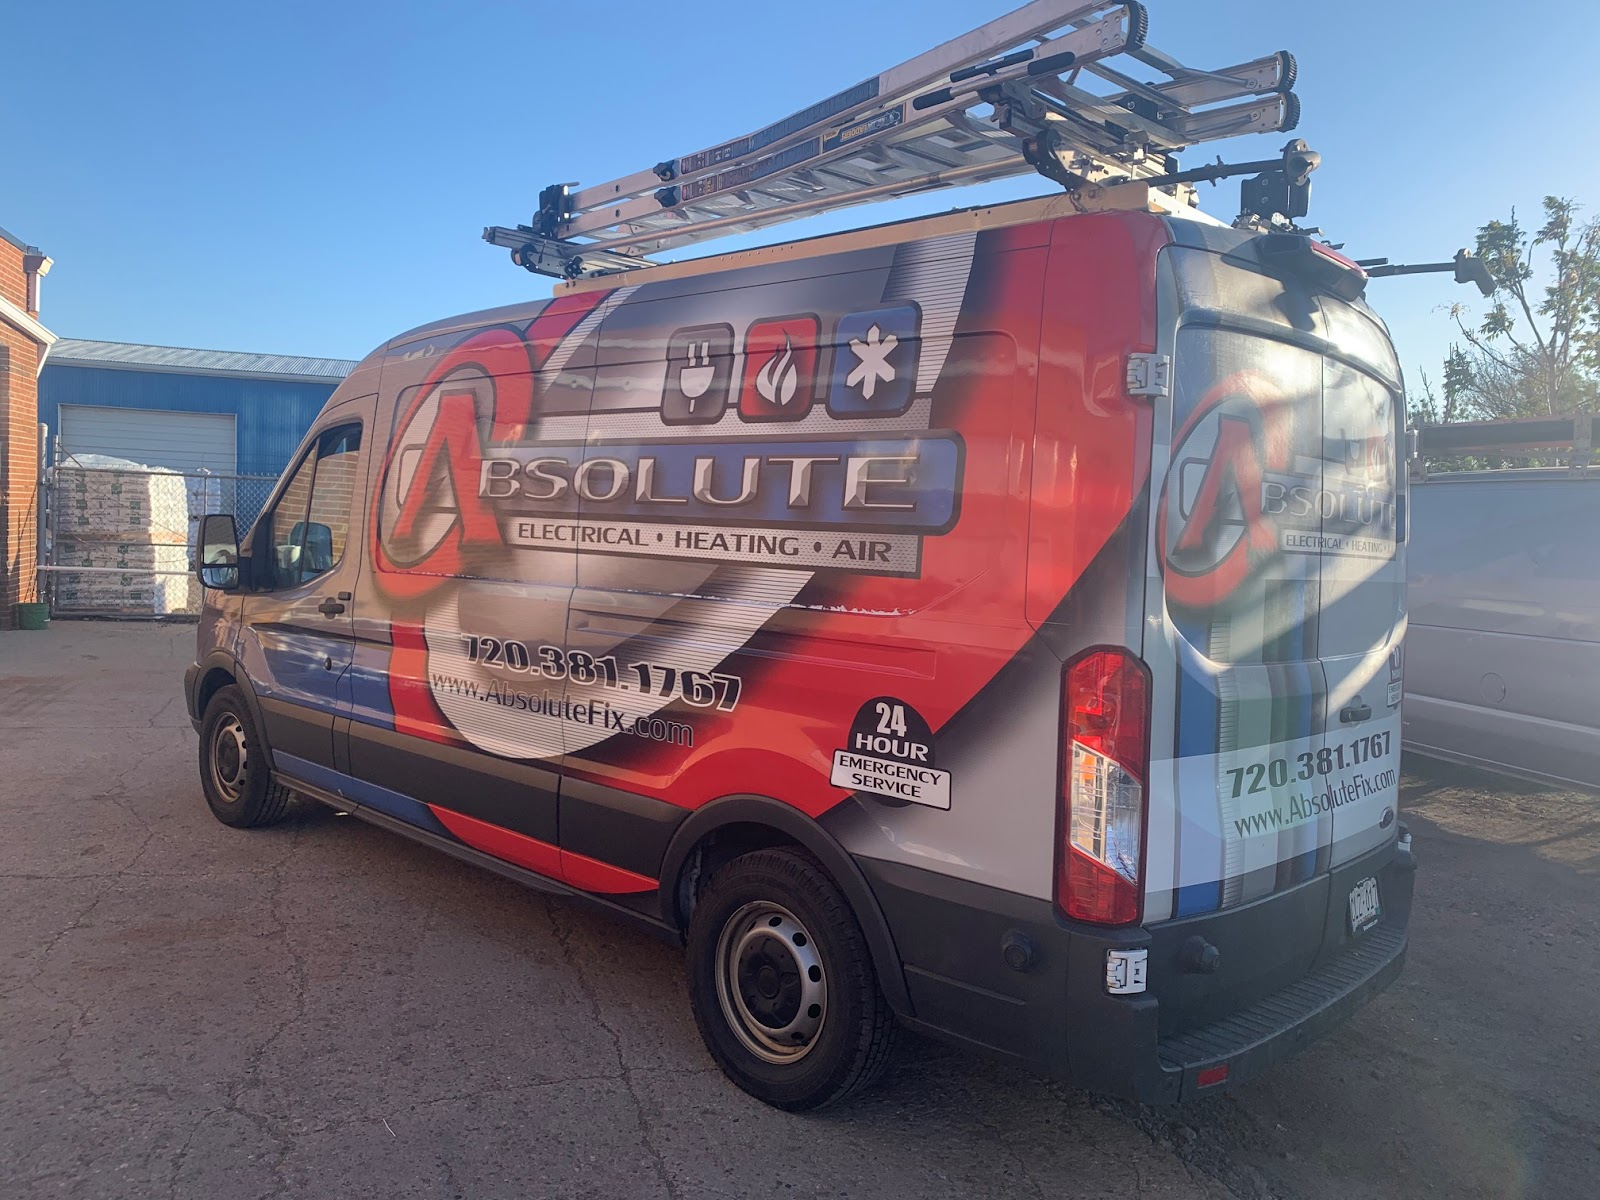 red, white, and blue Absolute-branded company vehicle